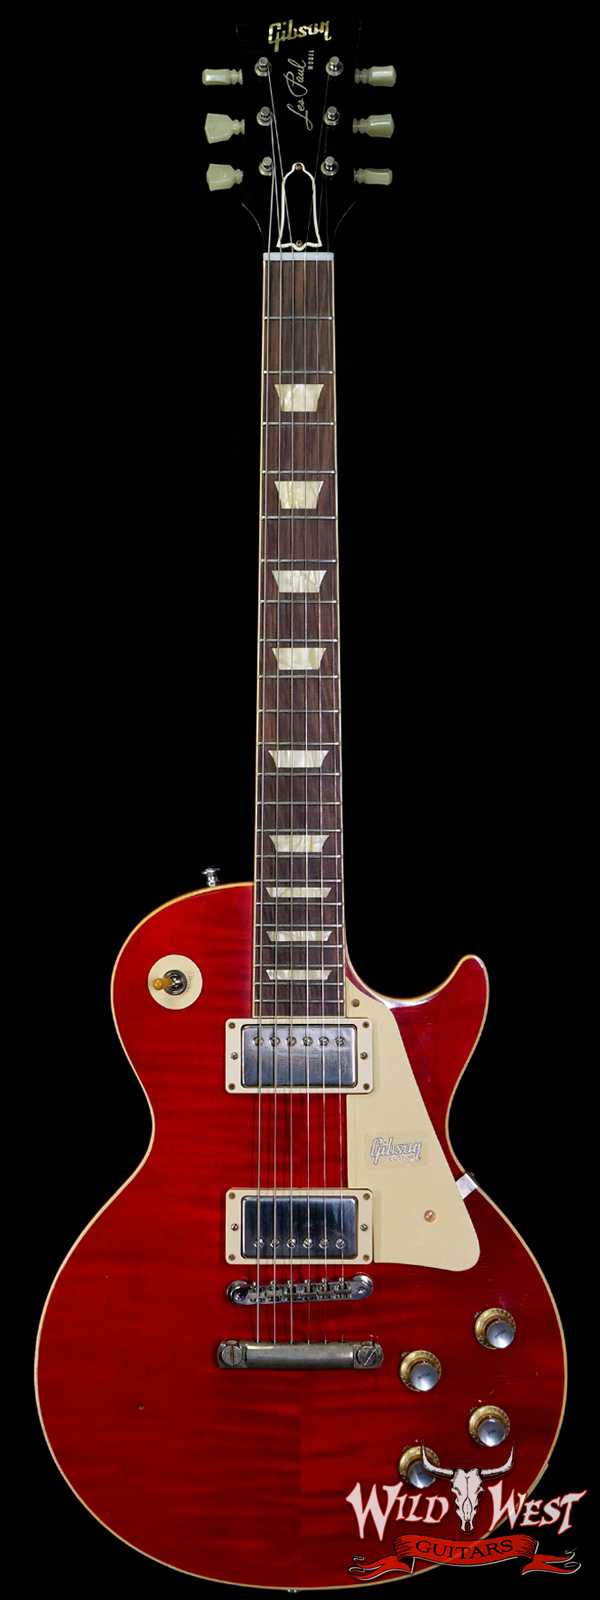 Gibson Custom Shop 1960 Les Paul Standard '60 Reissue R0 Figured Top Aged Cherry Red BOTB Page 158 8.45 LBS